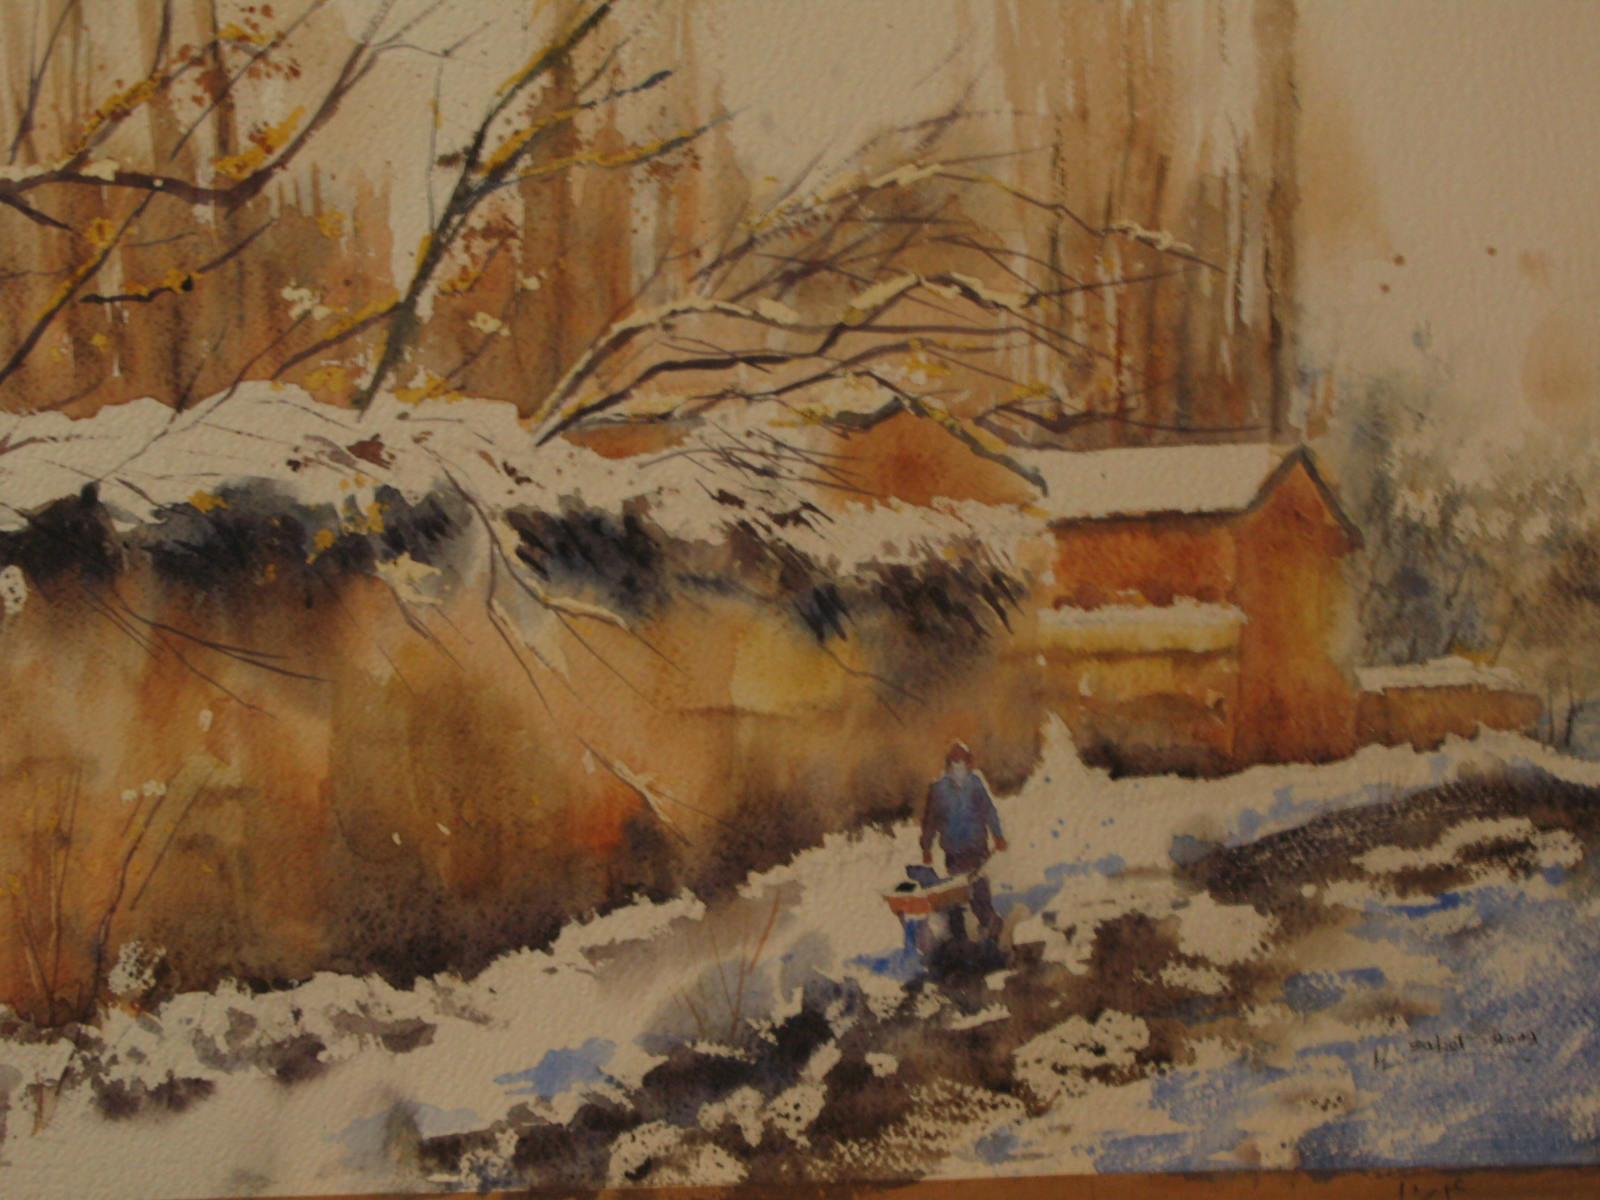 in+the+Snow+34x55+cm+watercolour.JPG